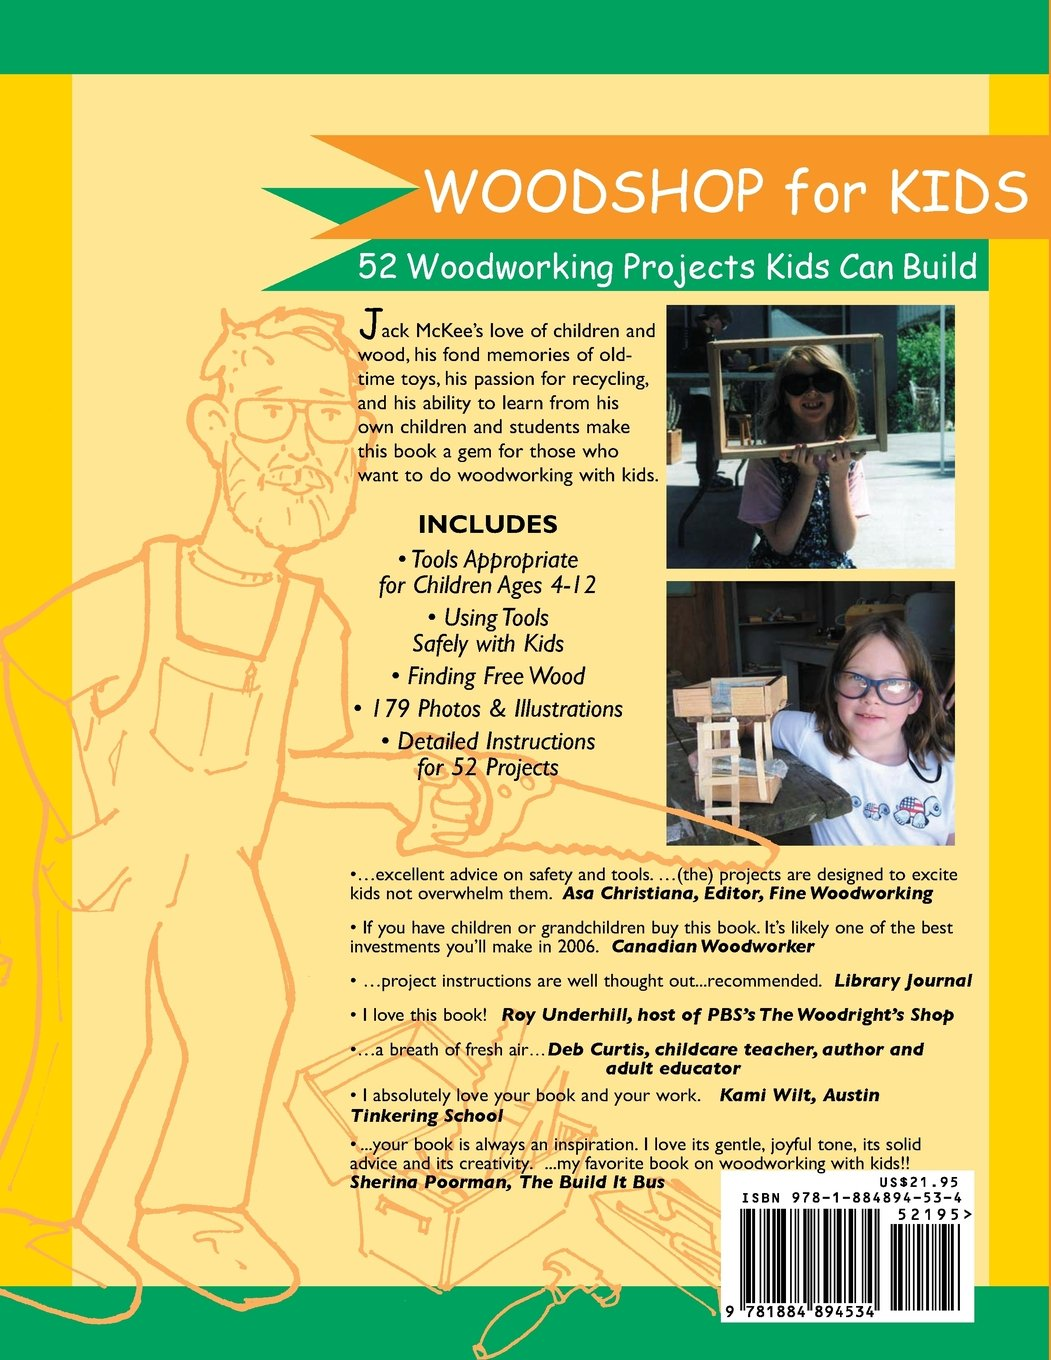 Woodshop for kids jack mckee 9781884894534 amazon books fandeluxe Image collections